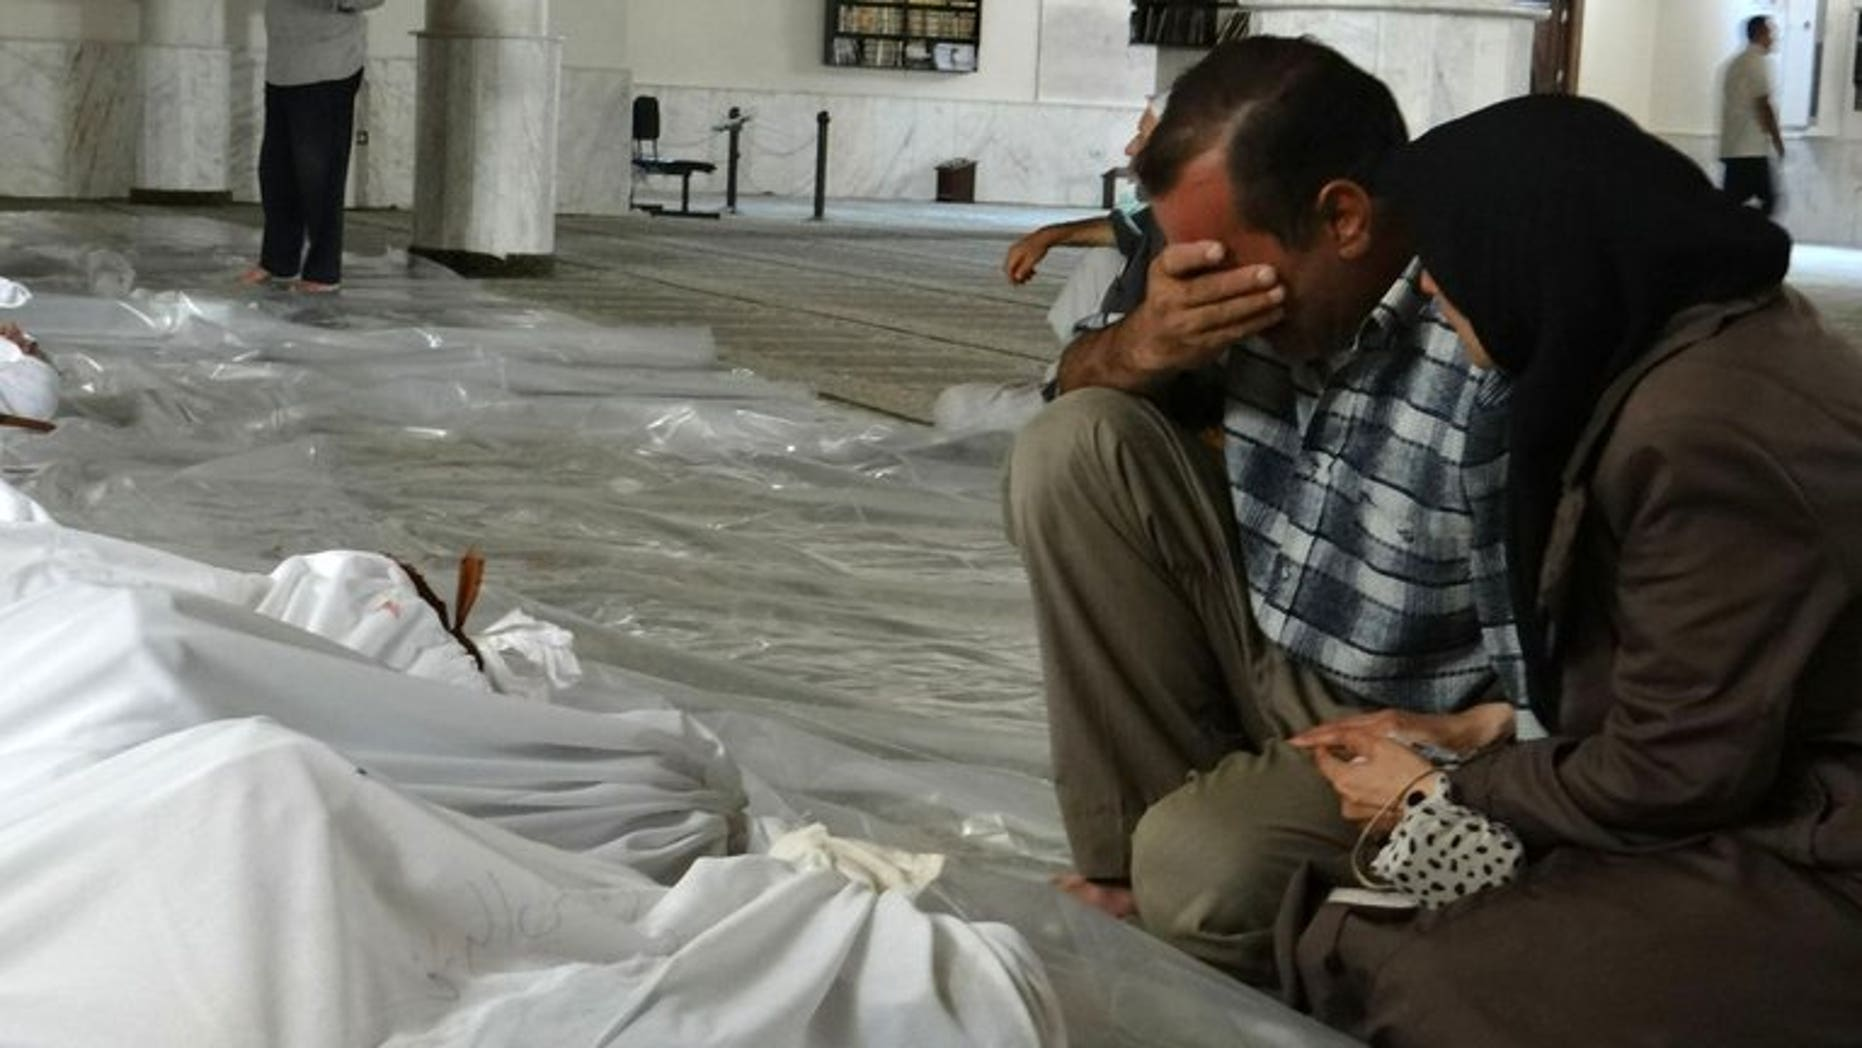 """Image from the Syrian opposition's Shaam News Network shows a couple mourning ahead of funerals following what Syrian rebels claim to be a toxic gas attack by pro-government forces in eastern Ghouta, on the outskirts of Damascus on August 21, 2013. The use of chemical weapons in Syria would constitute a """"crime against humanity,"""" UN Secretary General Ban Ki-moon said Friday"""